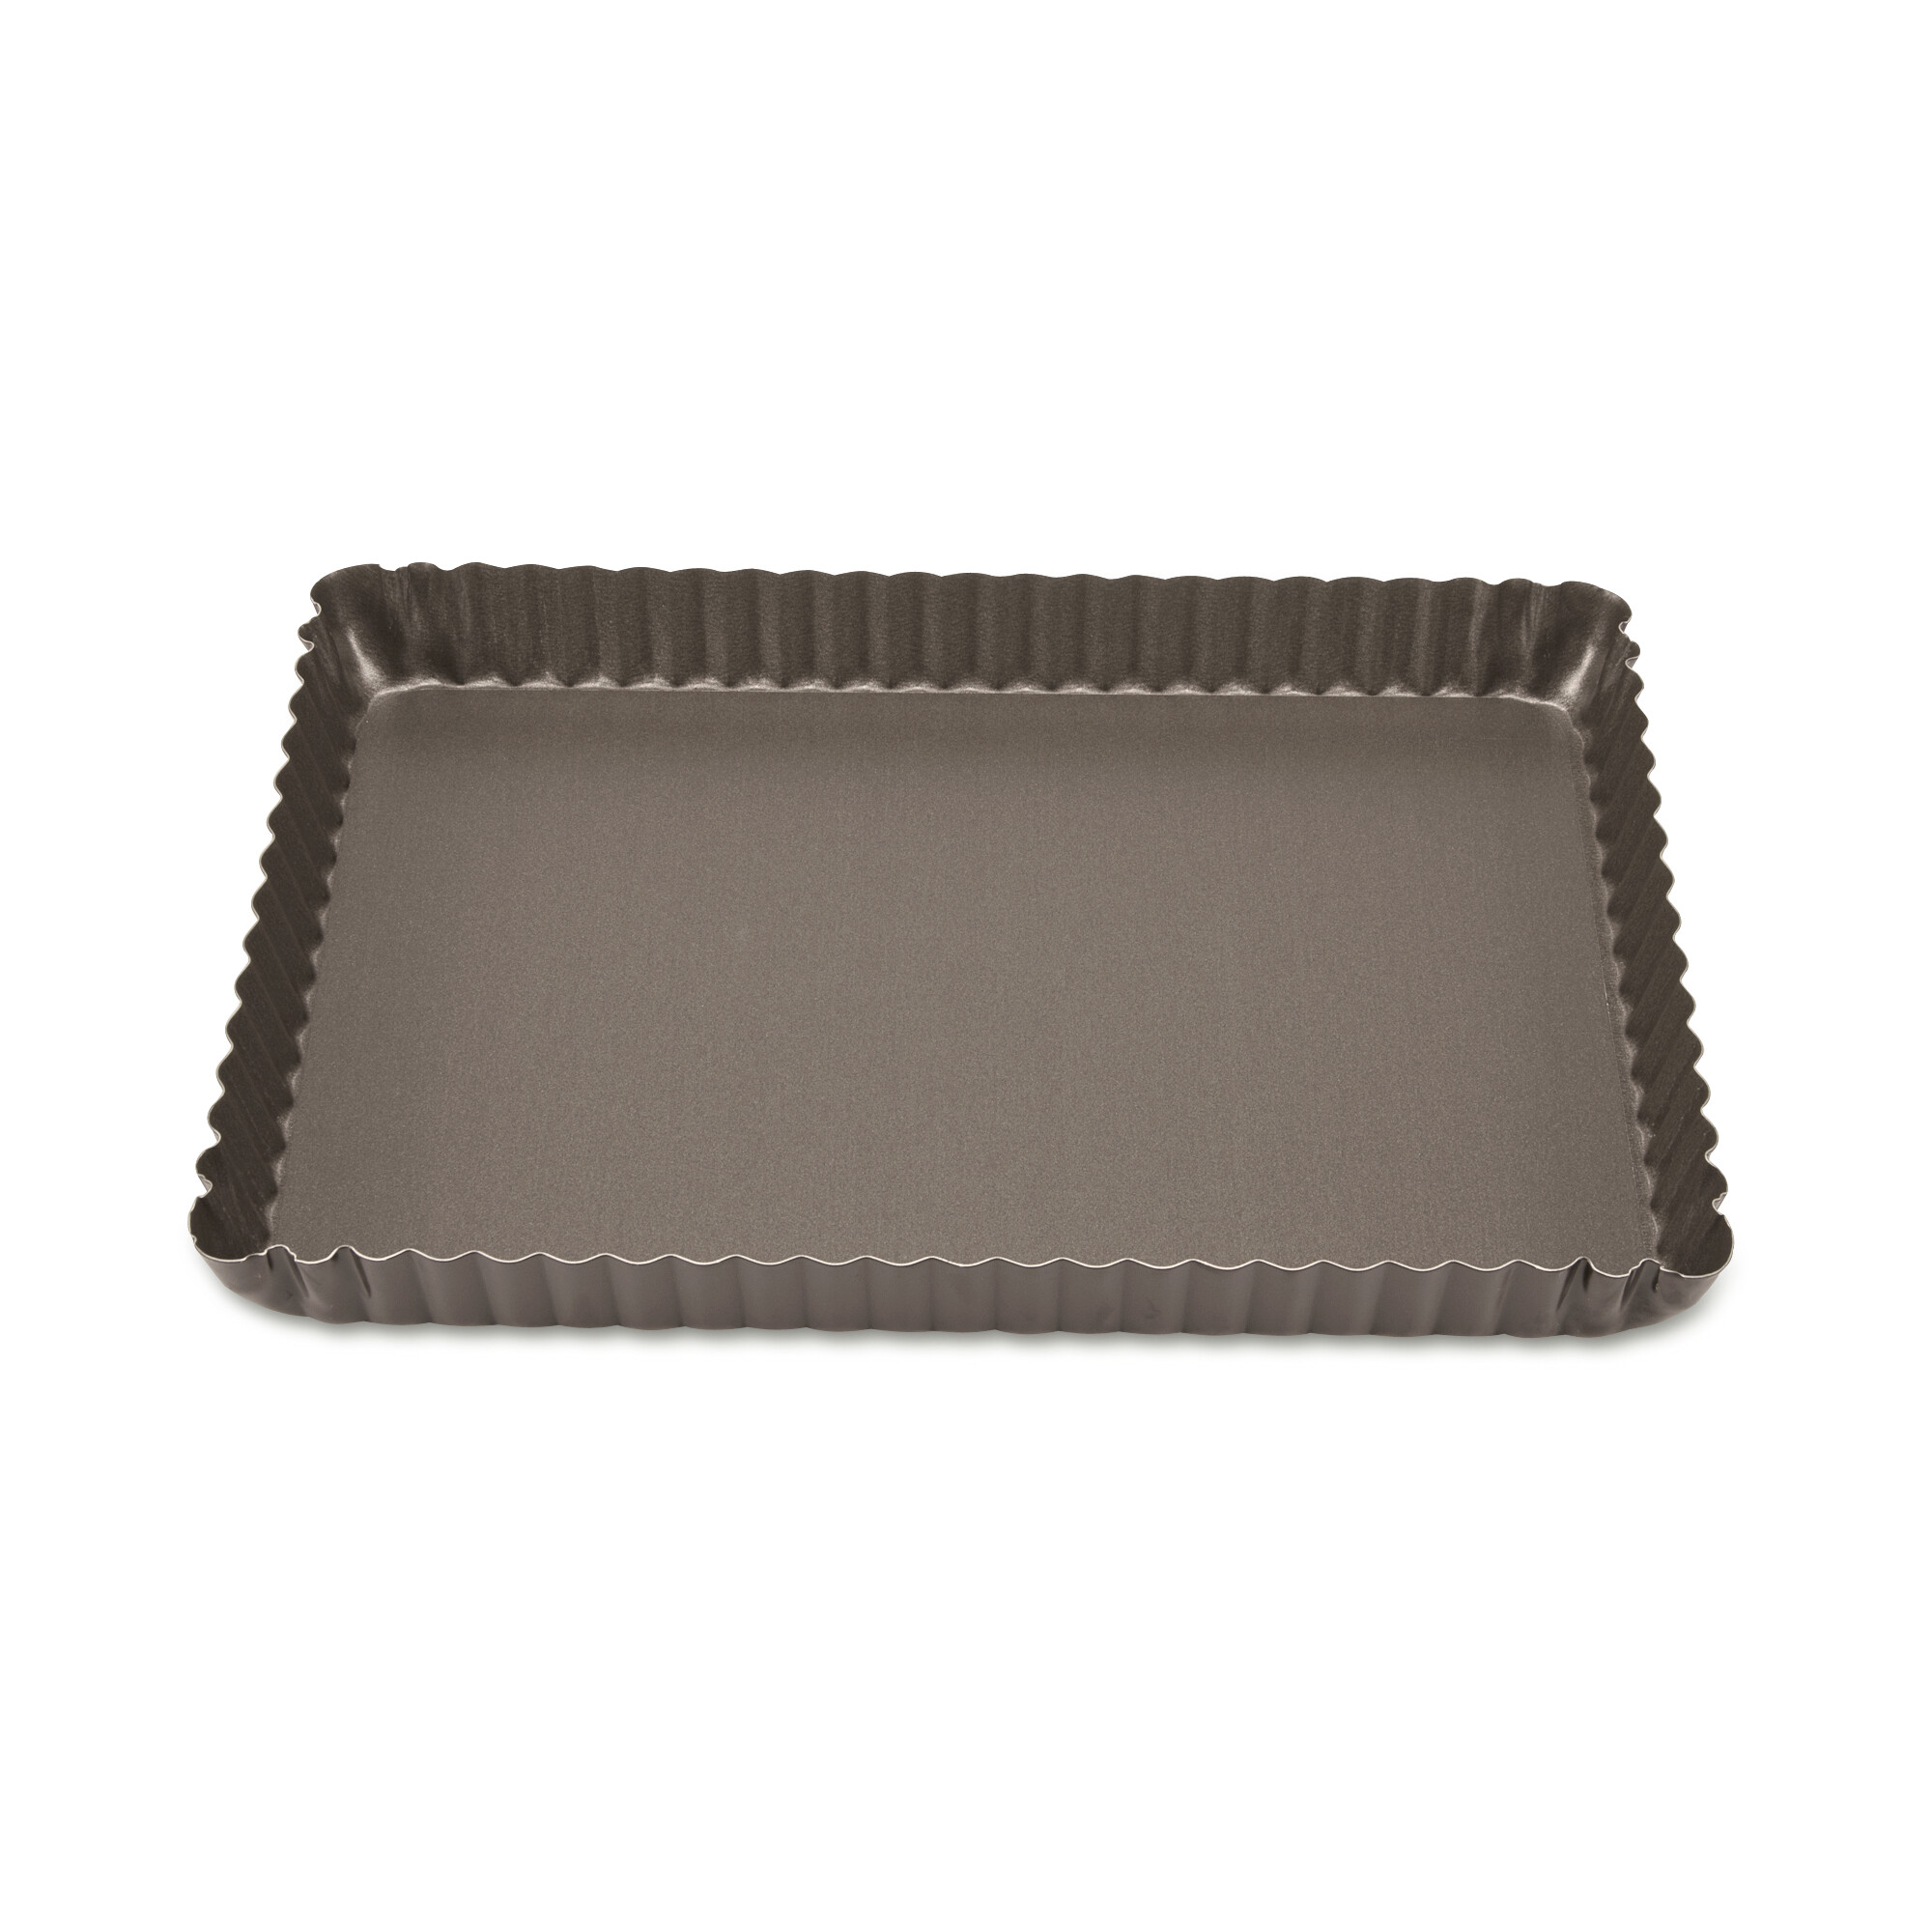 Perfect - Tart tin with removable bottom - Rectangle